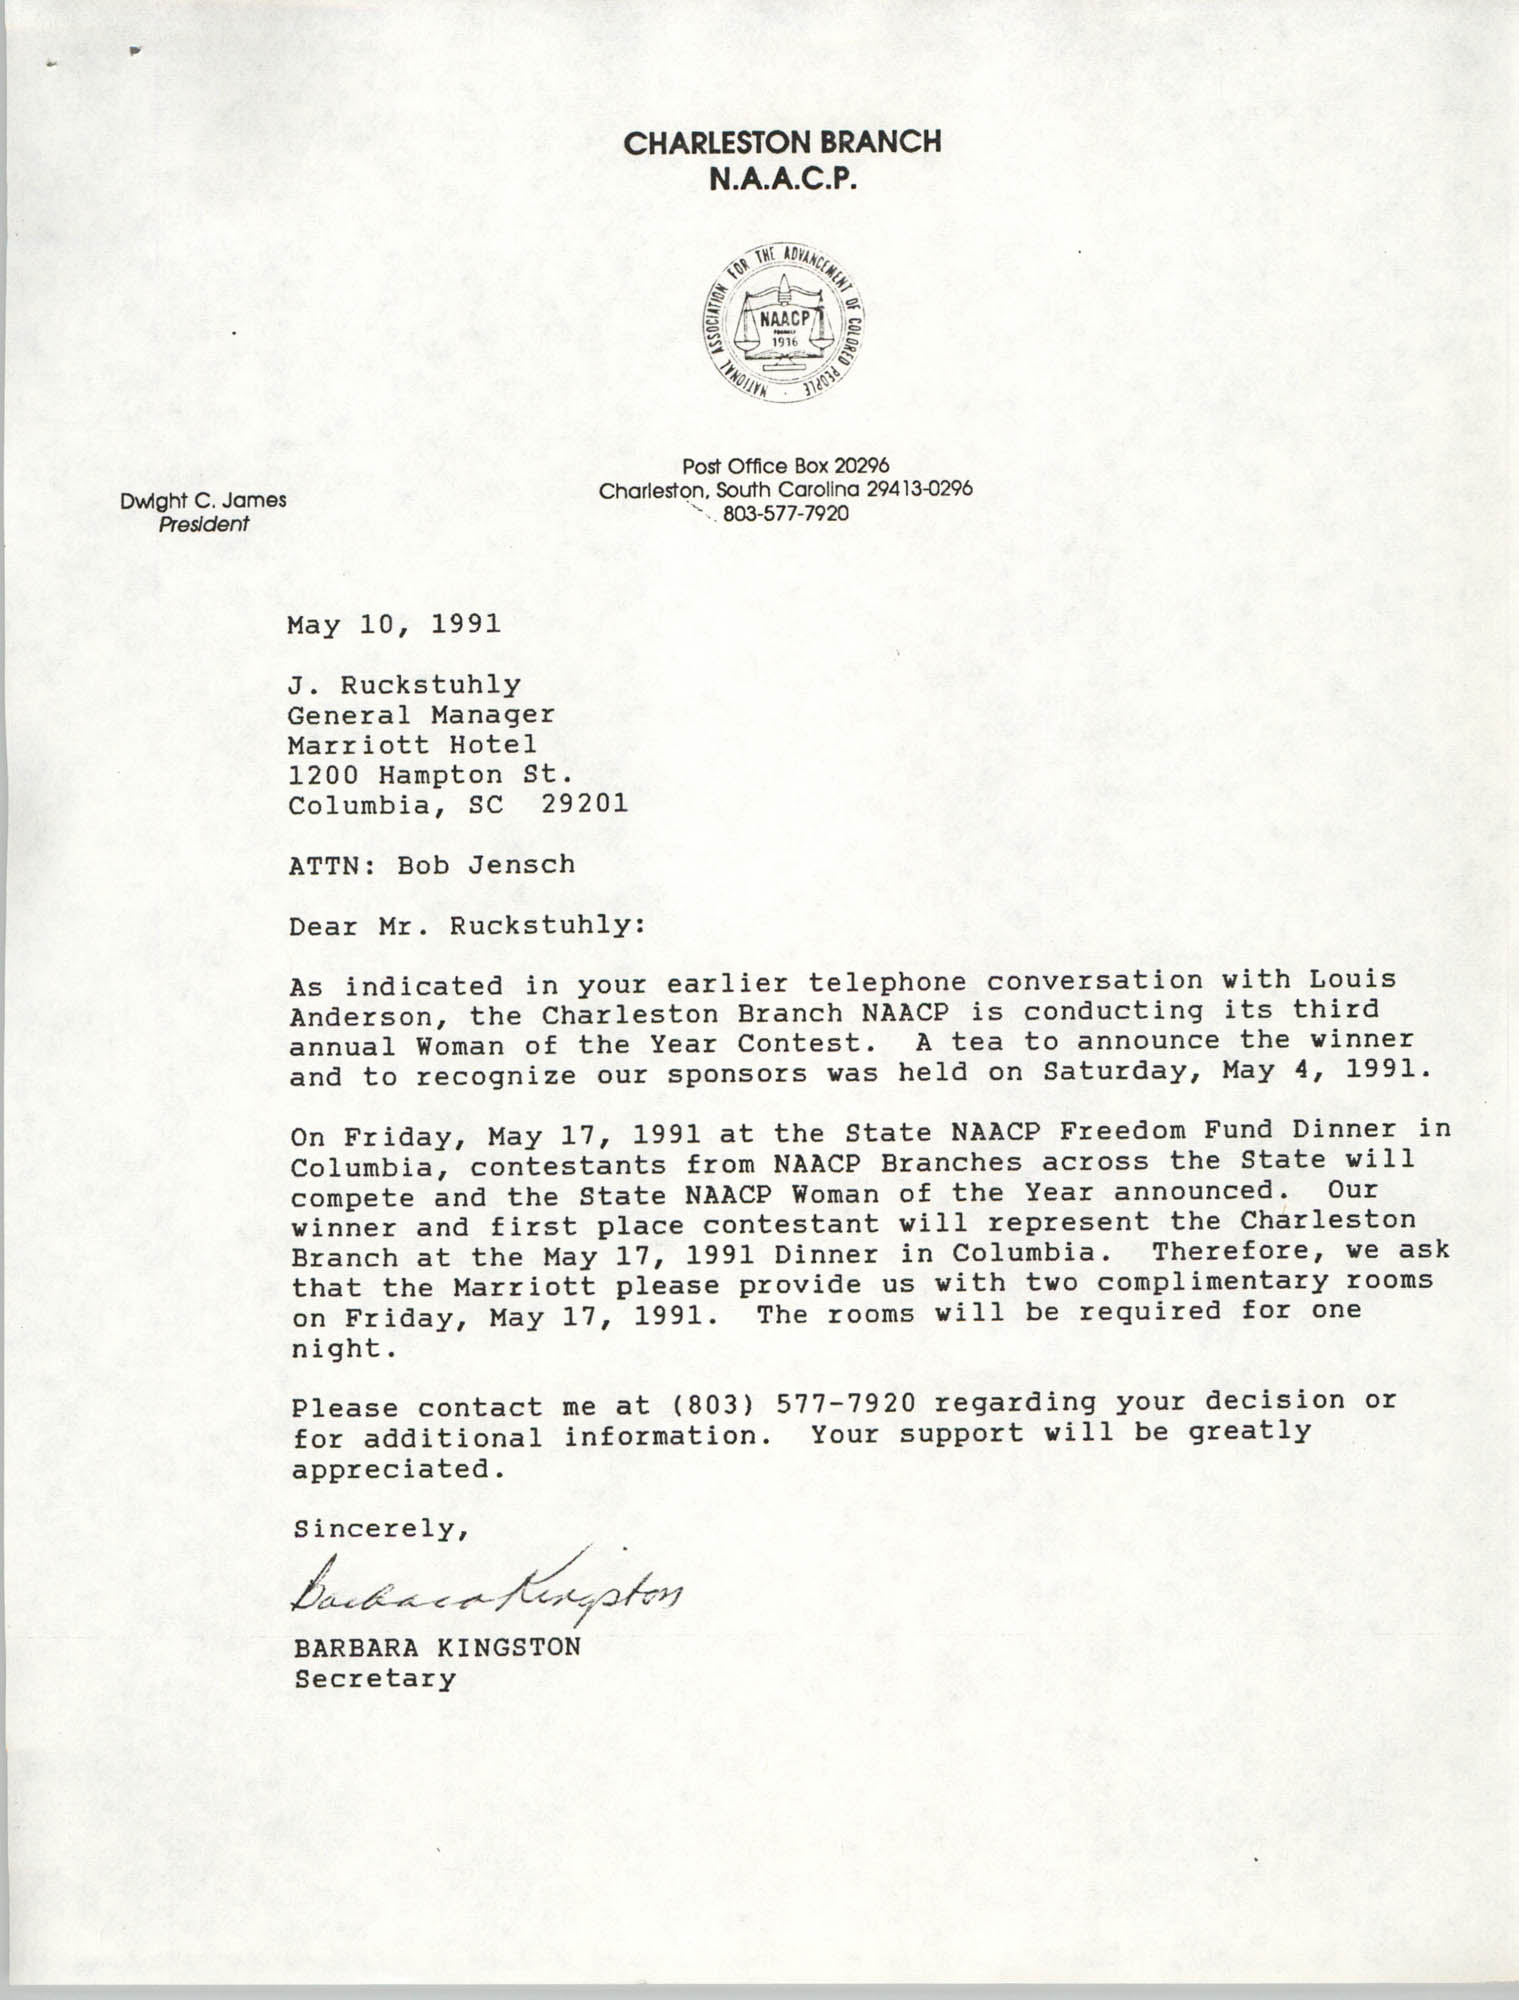 Letter from Barbara Kingston to J. Ruckstuhly, May 10, 1991